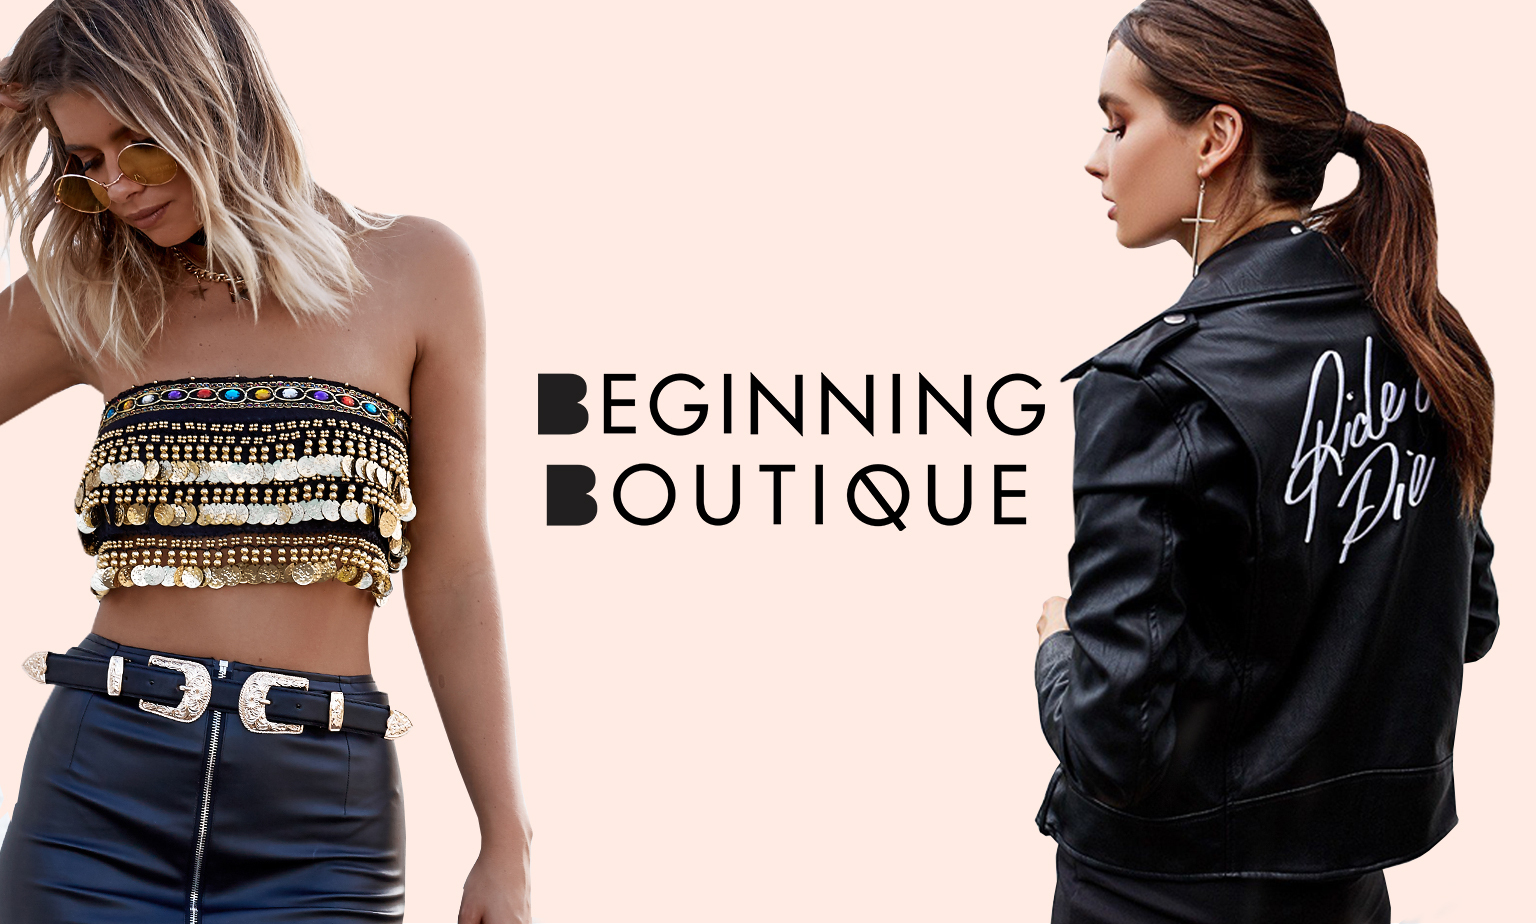 Save Up to 30% on Beginning Boutique